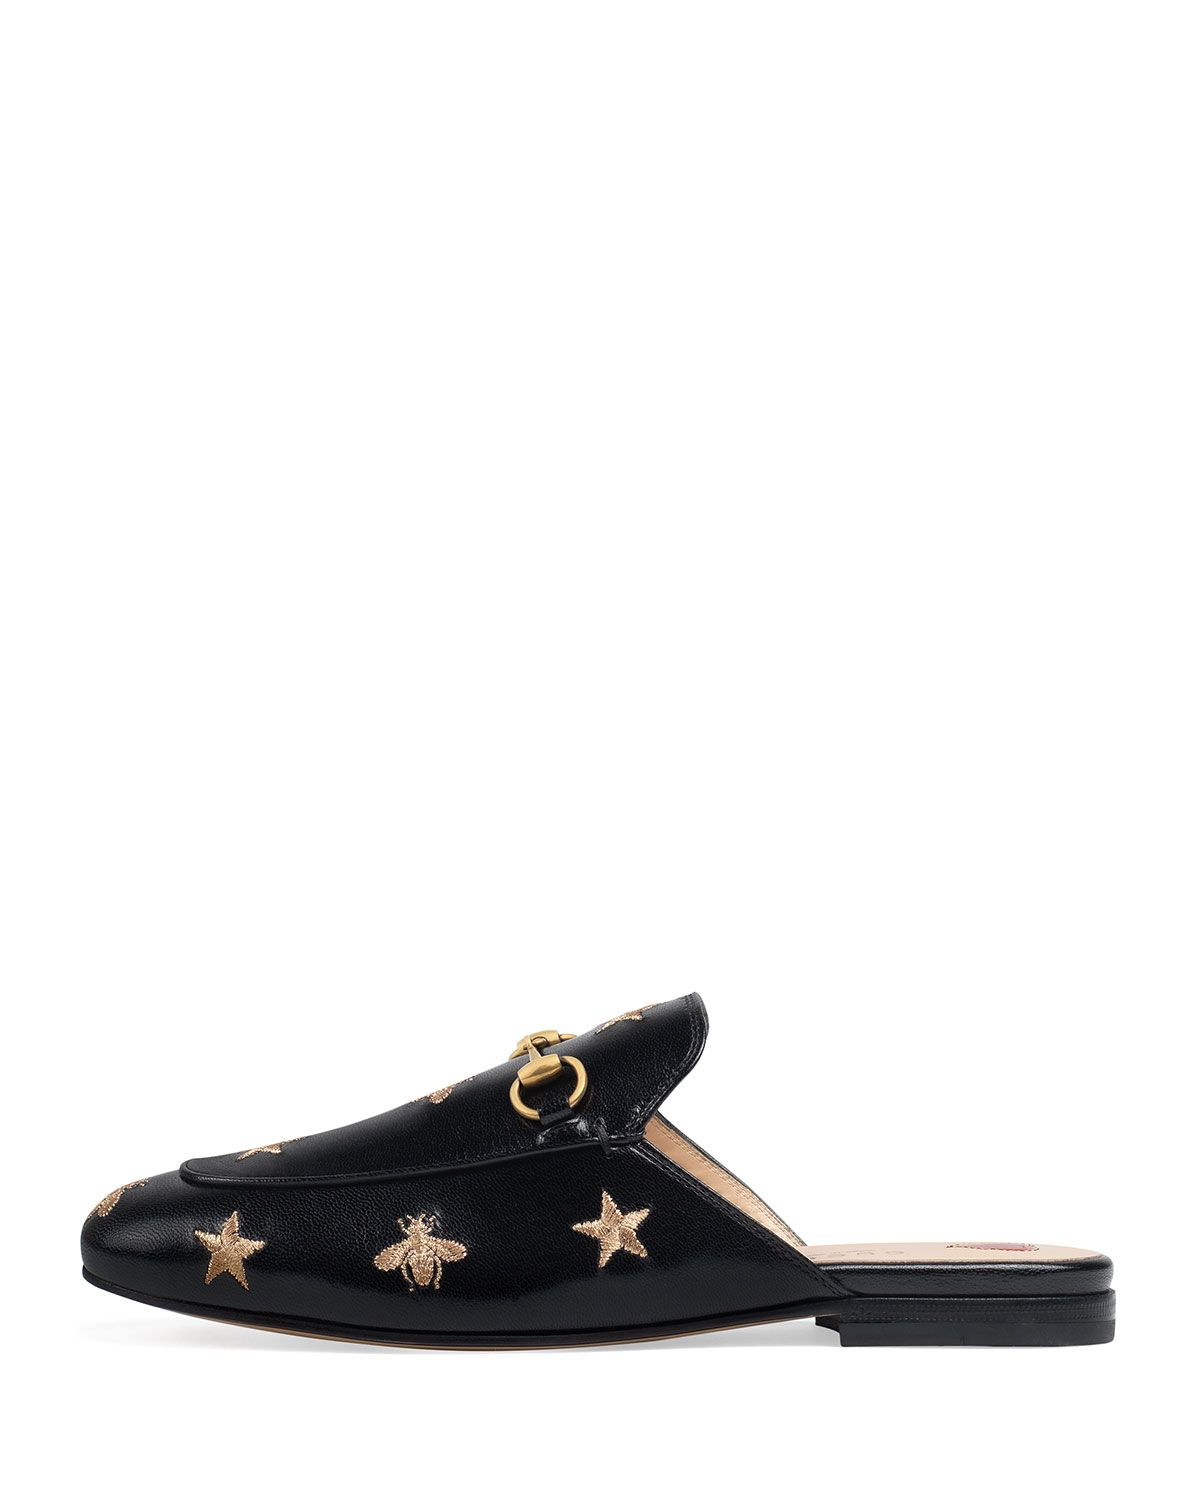 Gucci Princetown Bee and Star Flat Mule